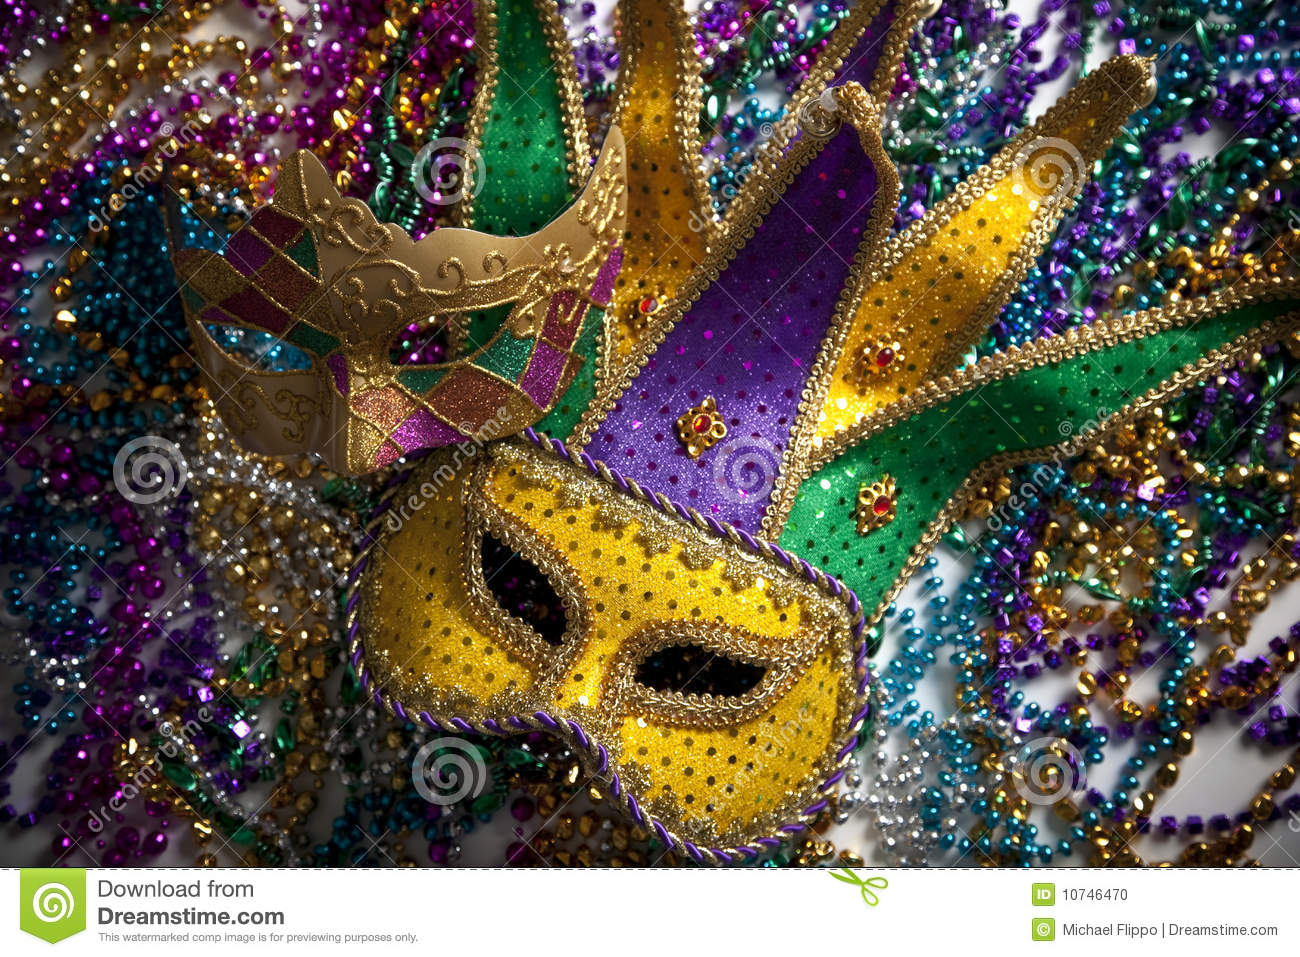 photos carnival alamy or stock image beads mardi photo gras images